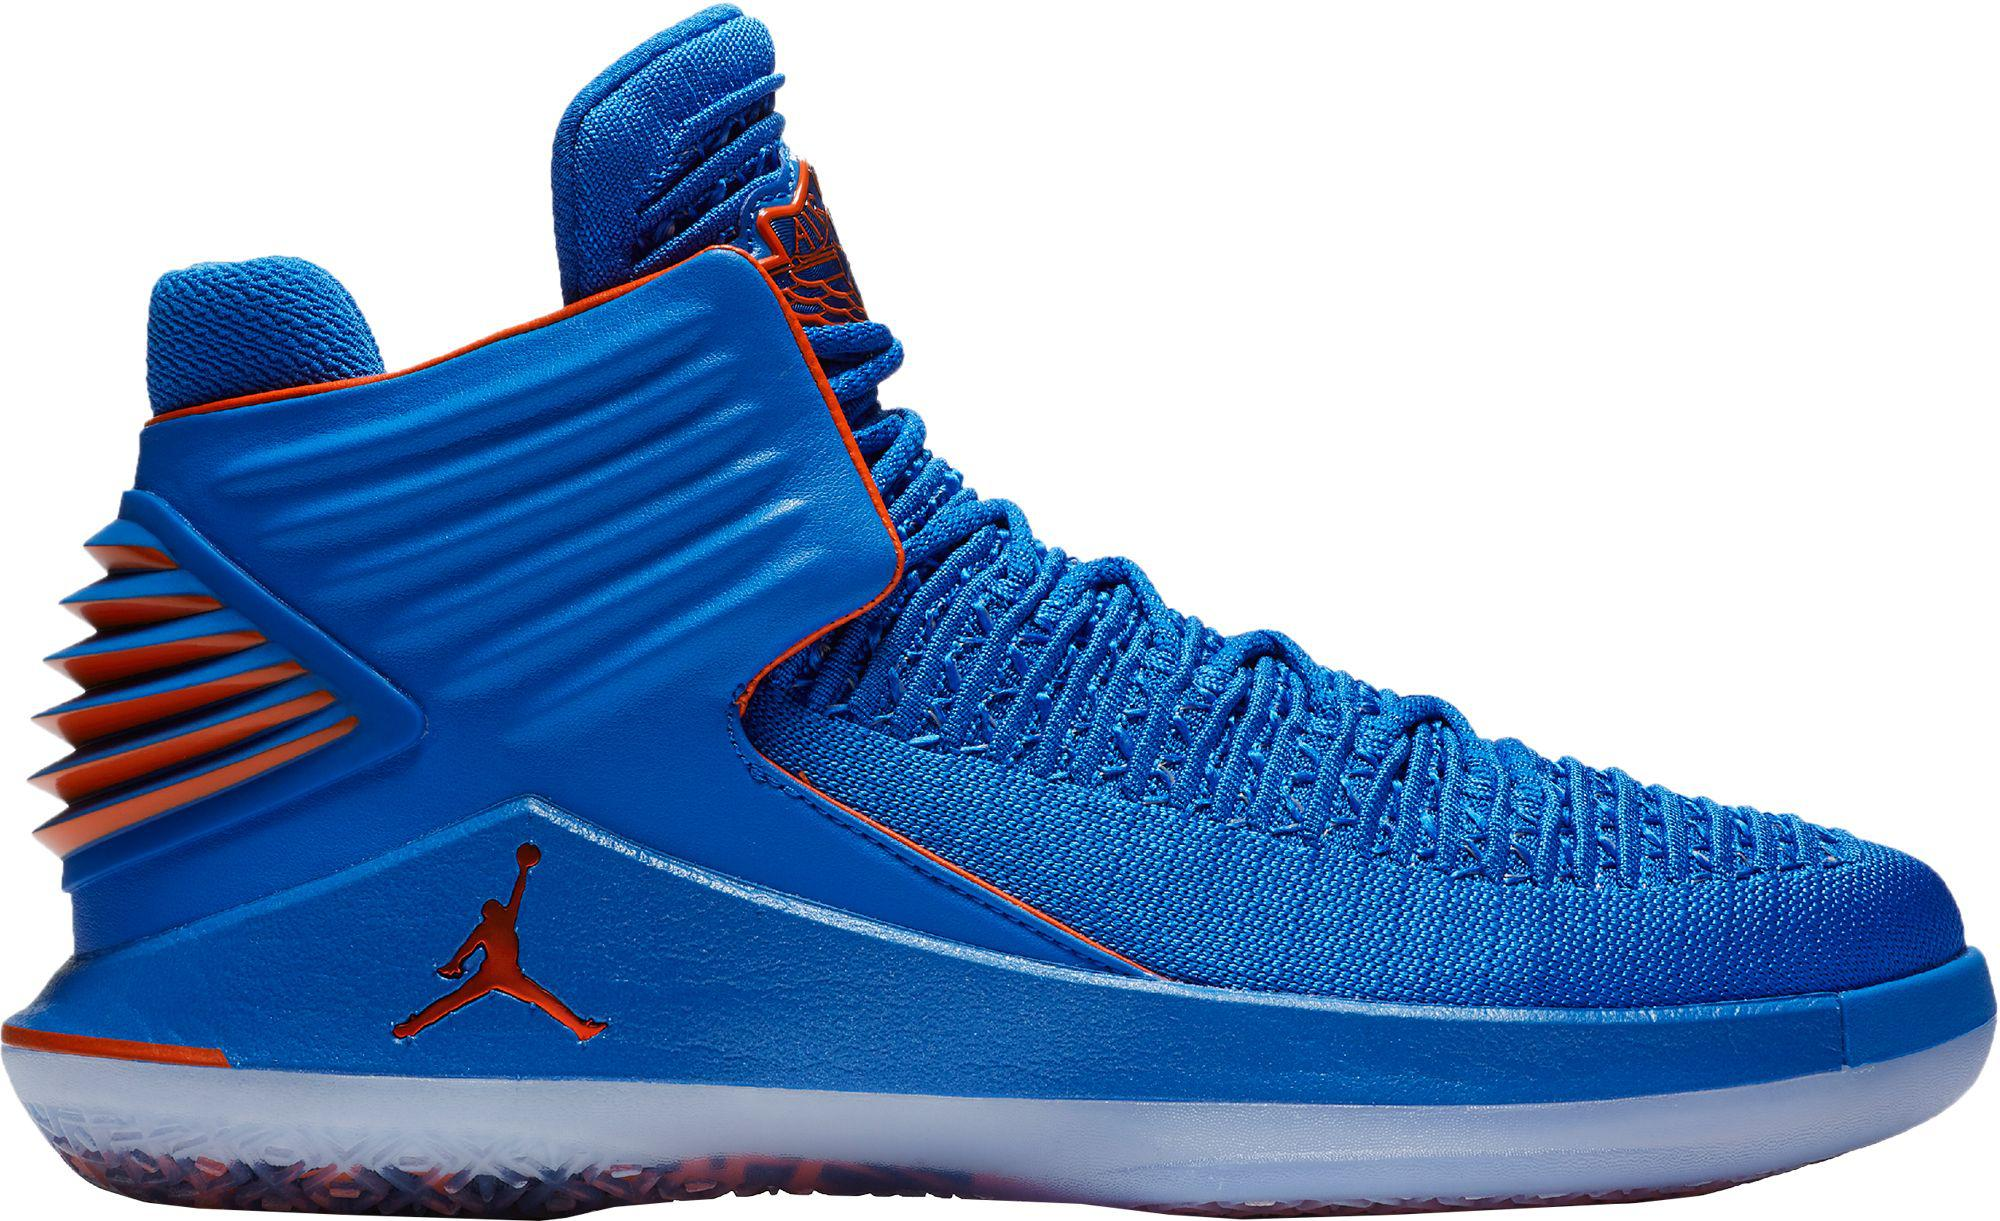 caa6c7c5136679 Lyst - Nike Air Xxxii Basketball Shoes in Blue for Men